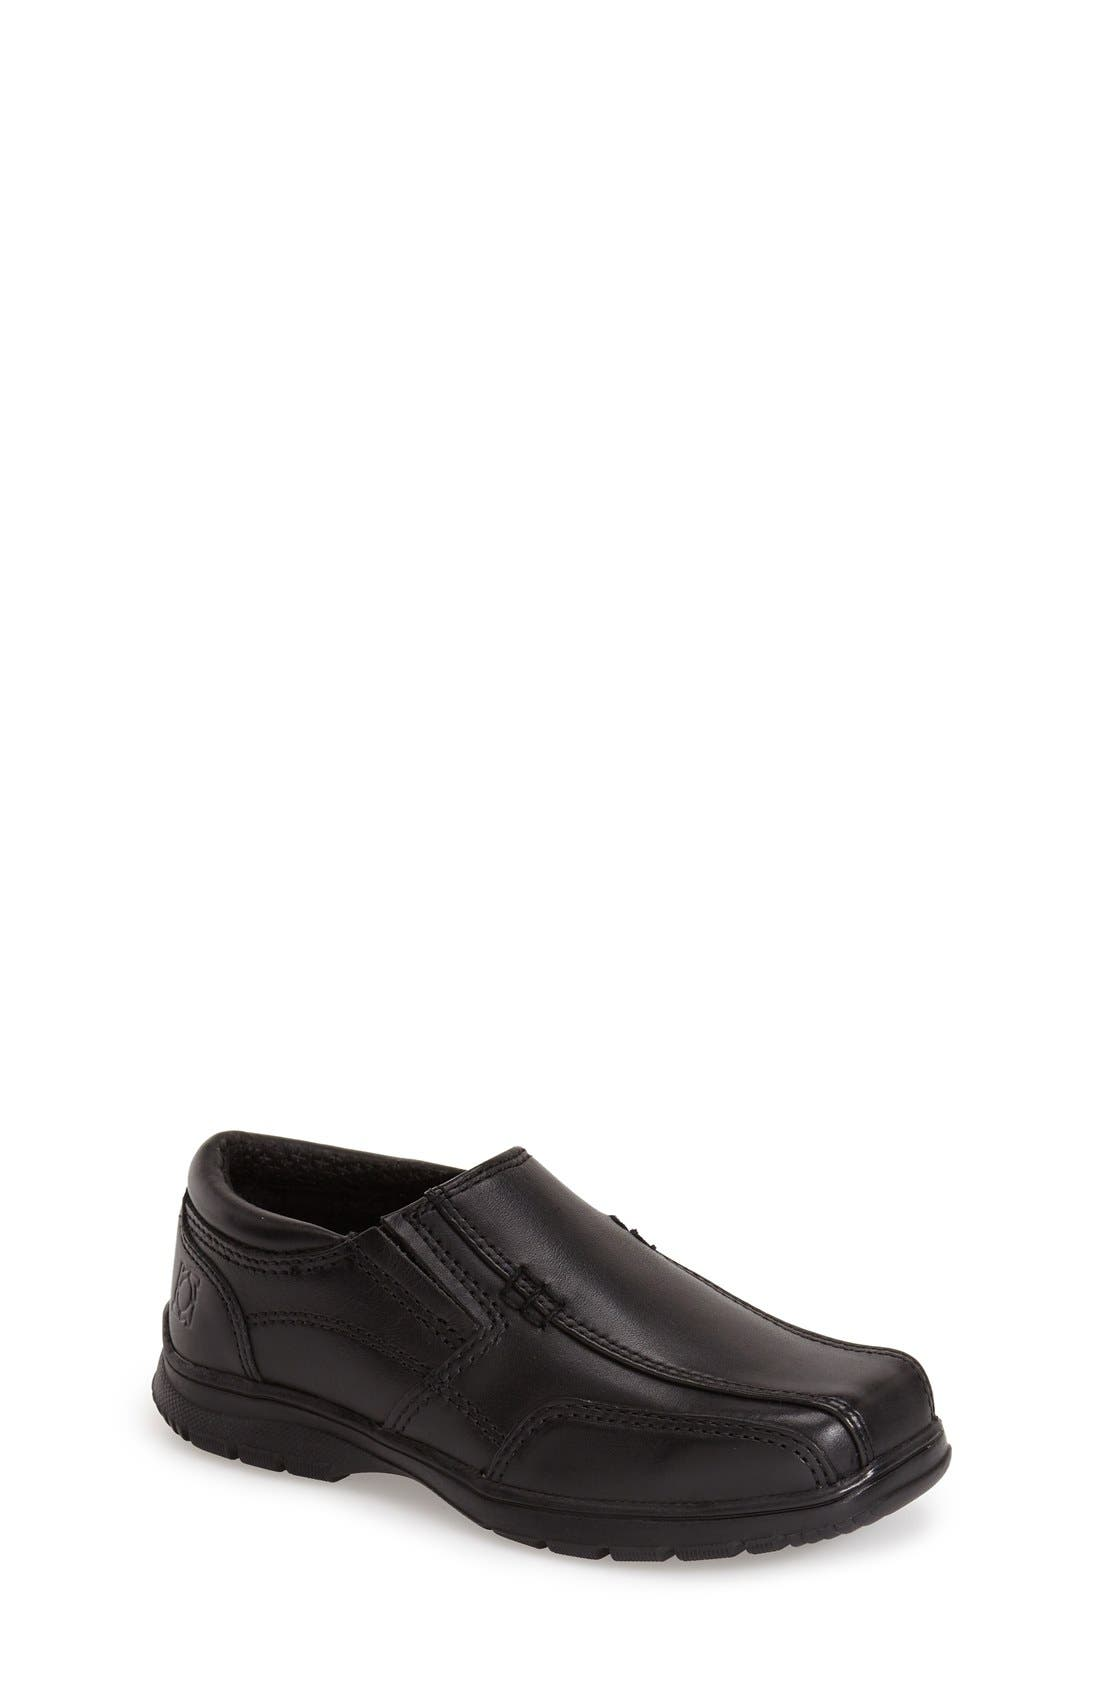 Reaction Kenneth Cole'Check N Check' Loafer,                             Main thumbnail 1, color,                             001